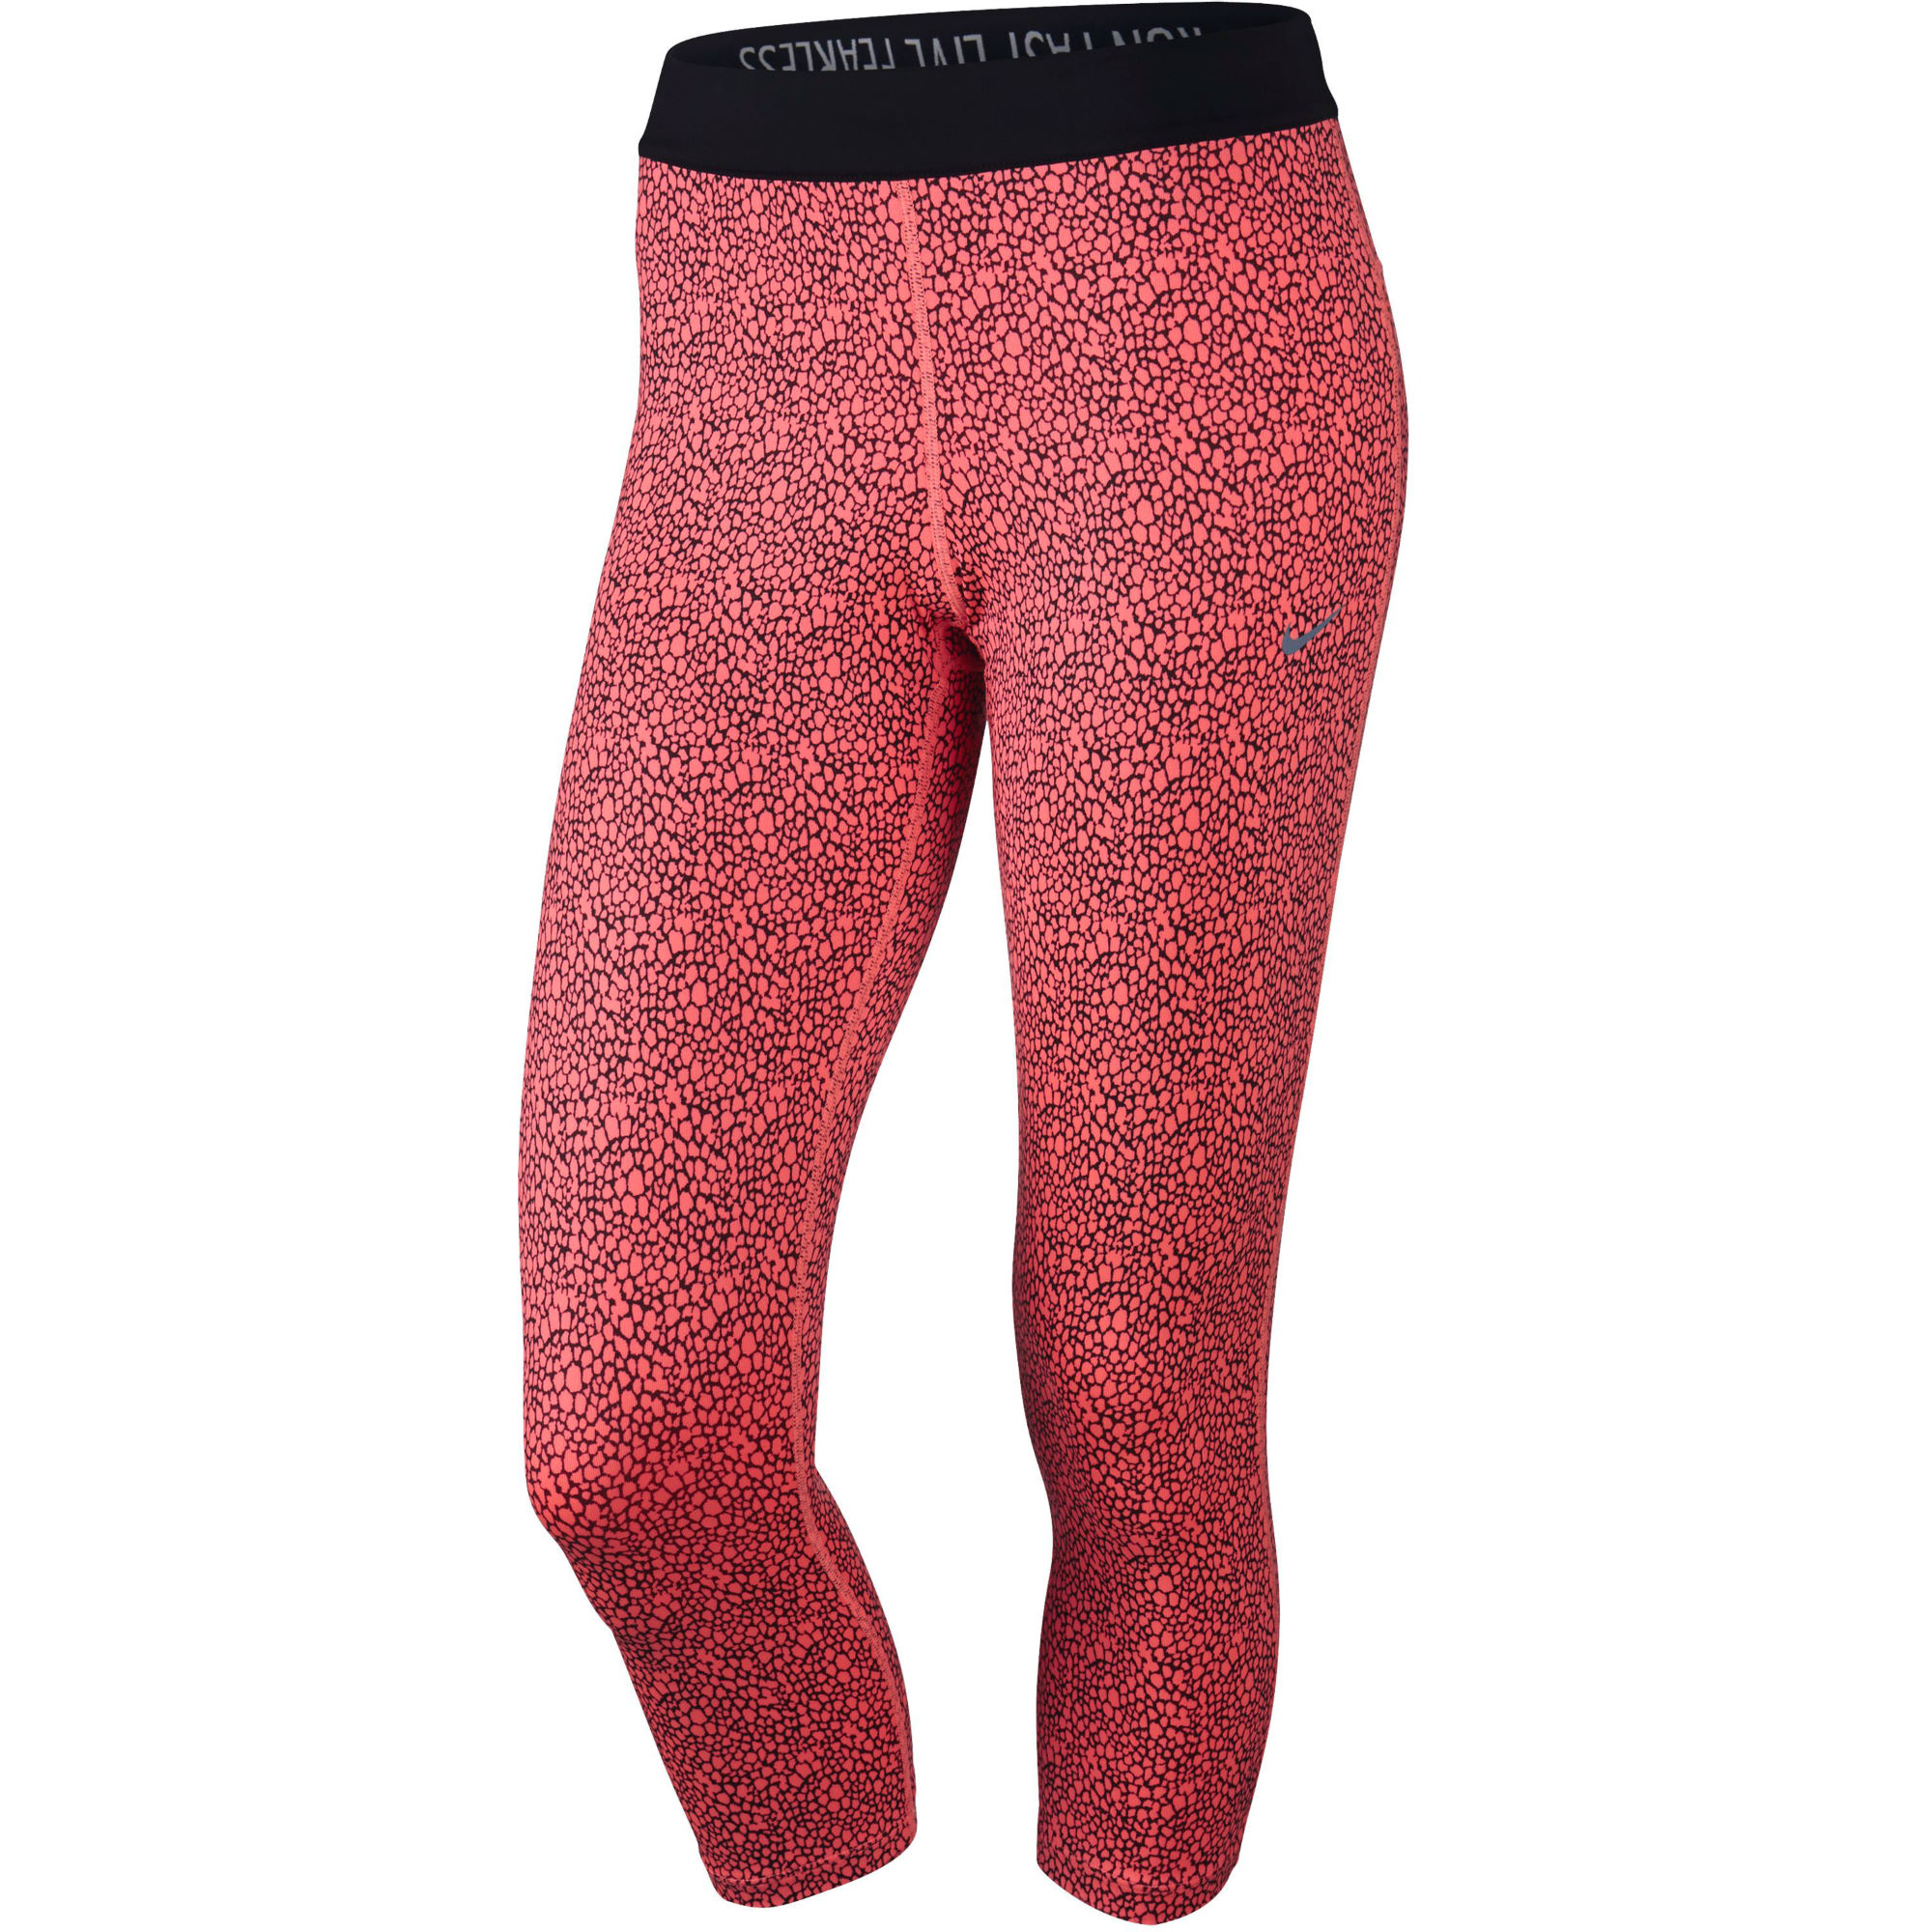 Women's Craft® Brilliant Light Tights:: Warm high-visibility thermal tights with ergonomic fit and key/music litastmaterlo.gq web exclusive item.